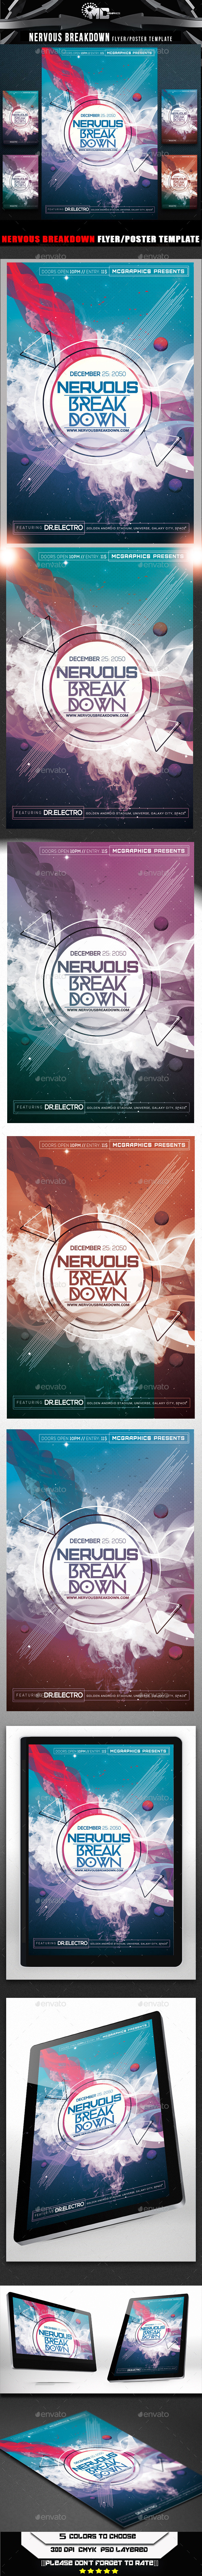 GraphicRiver Nervous Break Down Flyer Template 8958882